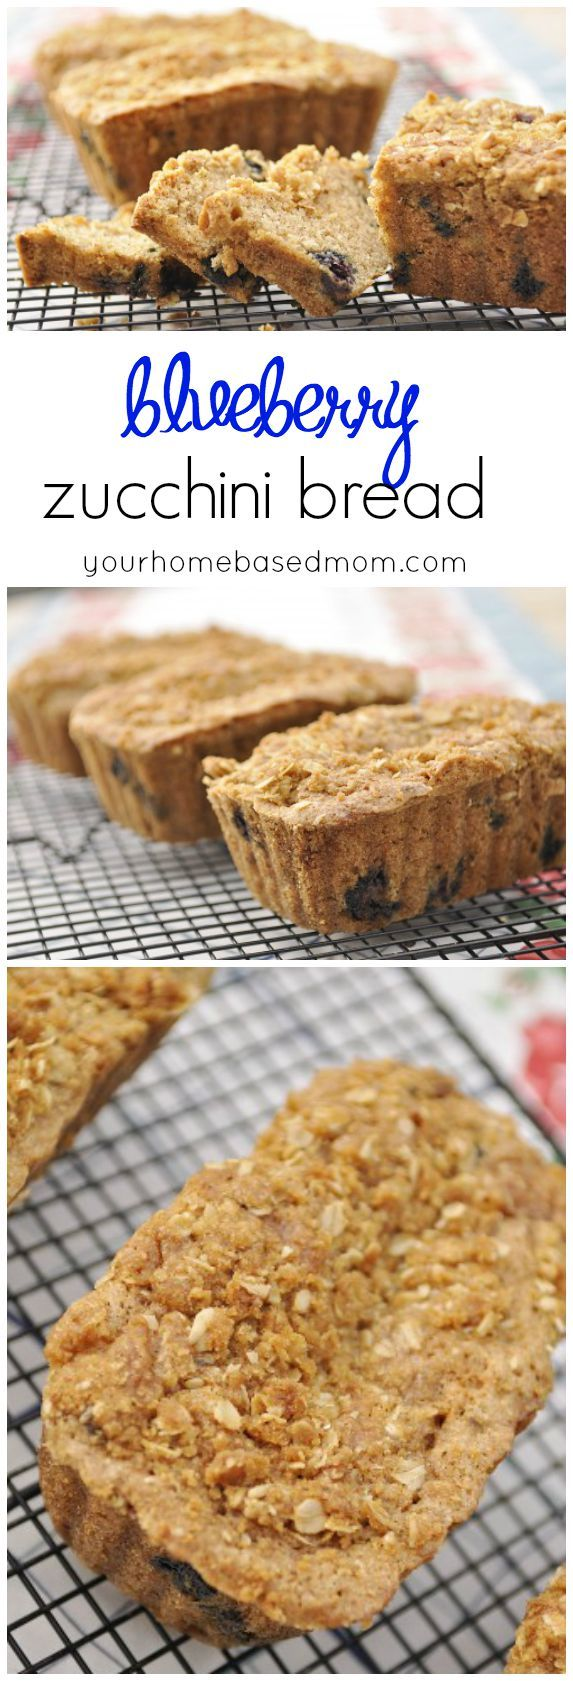 Blueberry Zucchini Bread is the perfect way to use up that zucchini in the garden!  If you don't have zucchini in the garden, go buy some so you can make this bread!